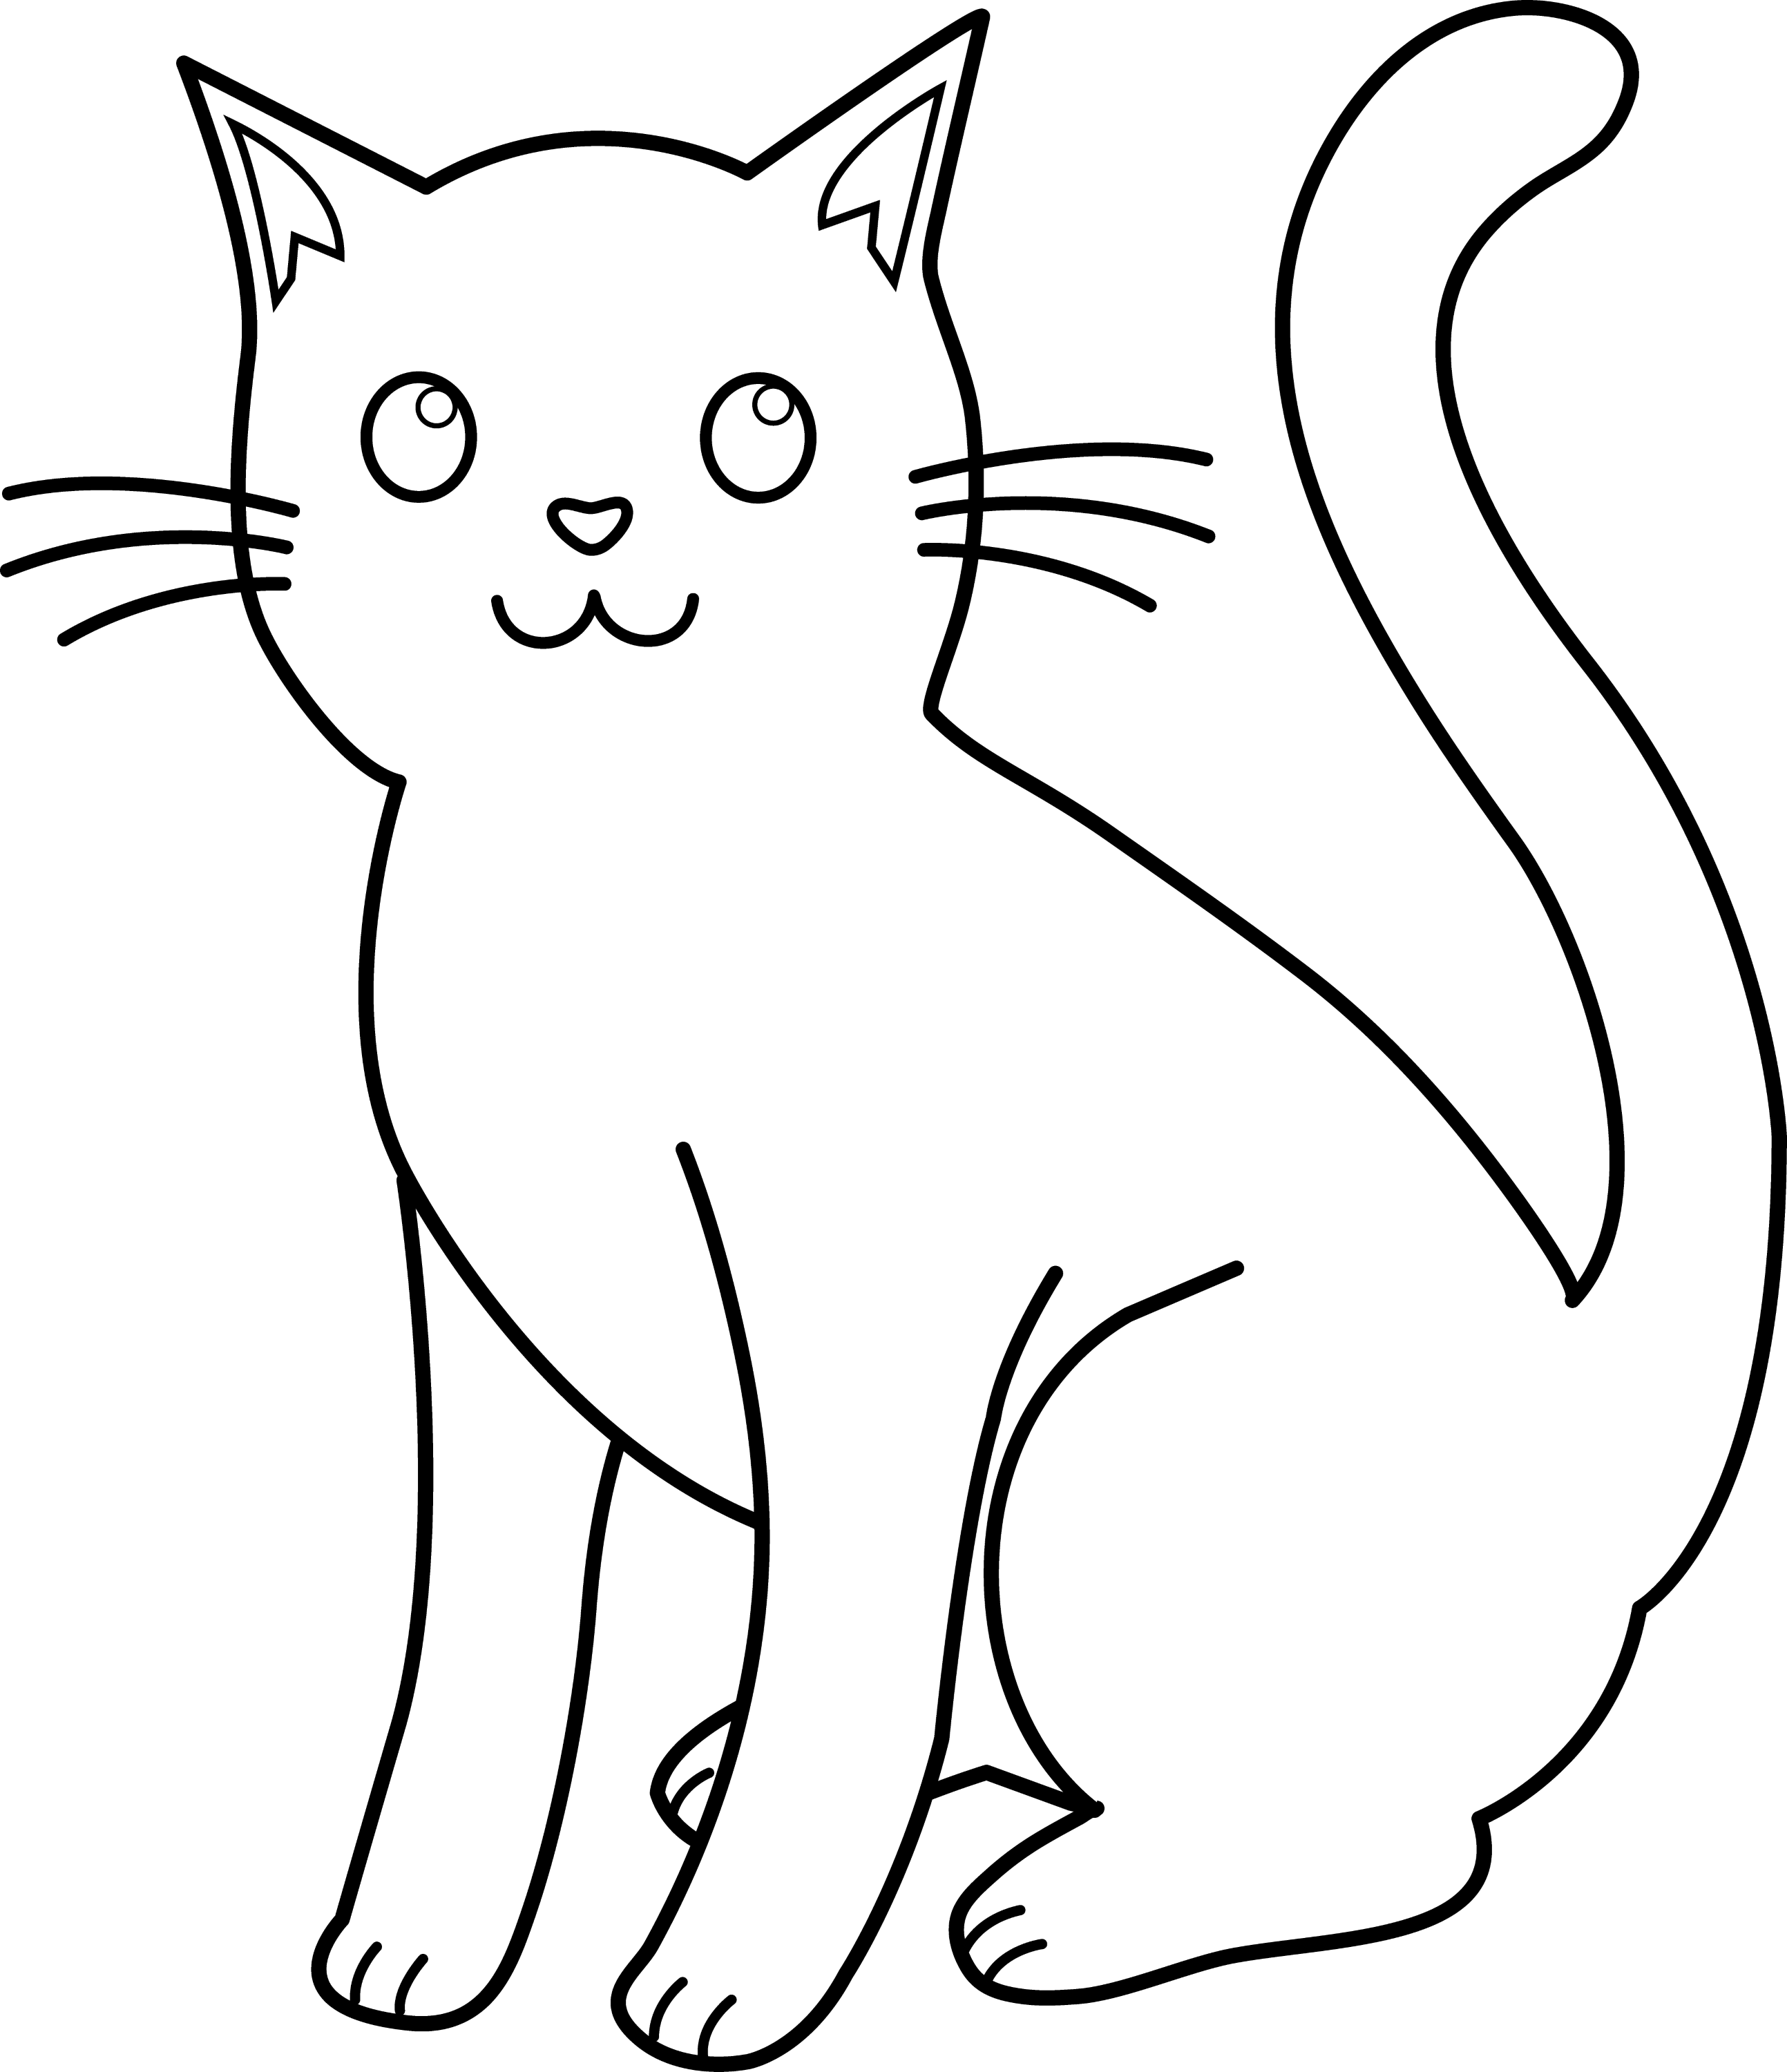 Line Drawing Kitten : Black and white cat lineart free clip art